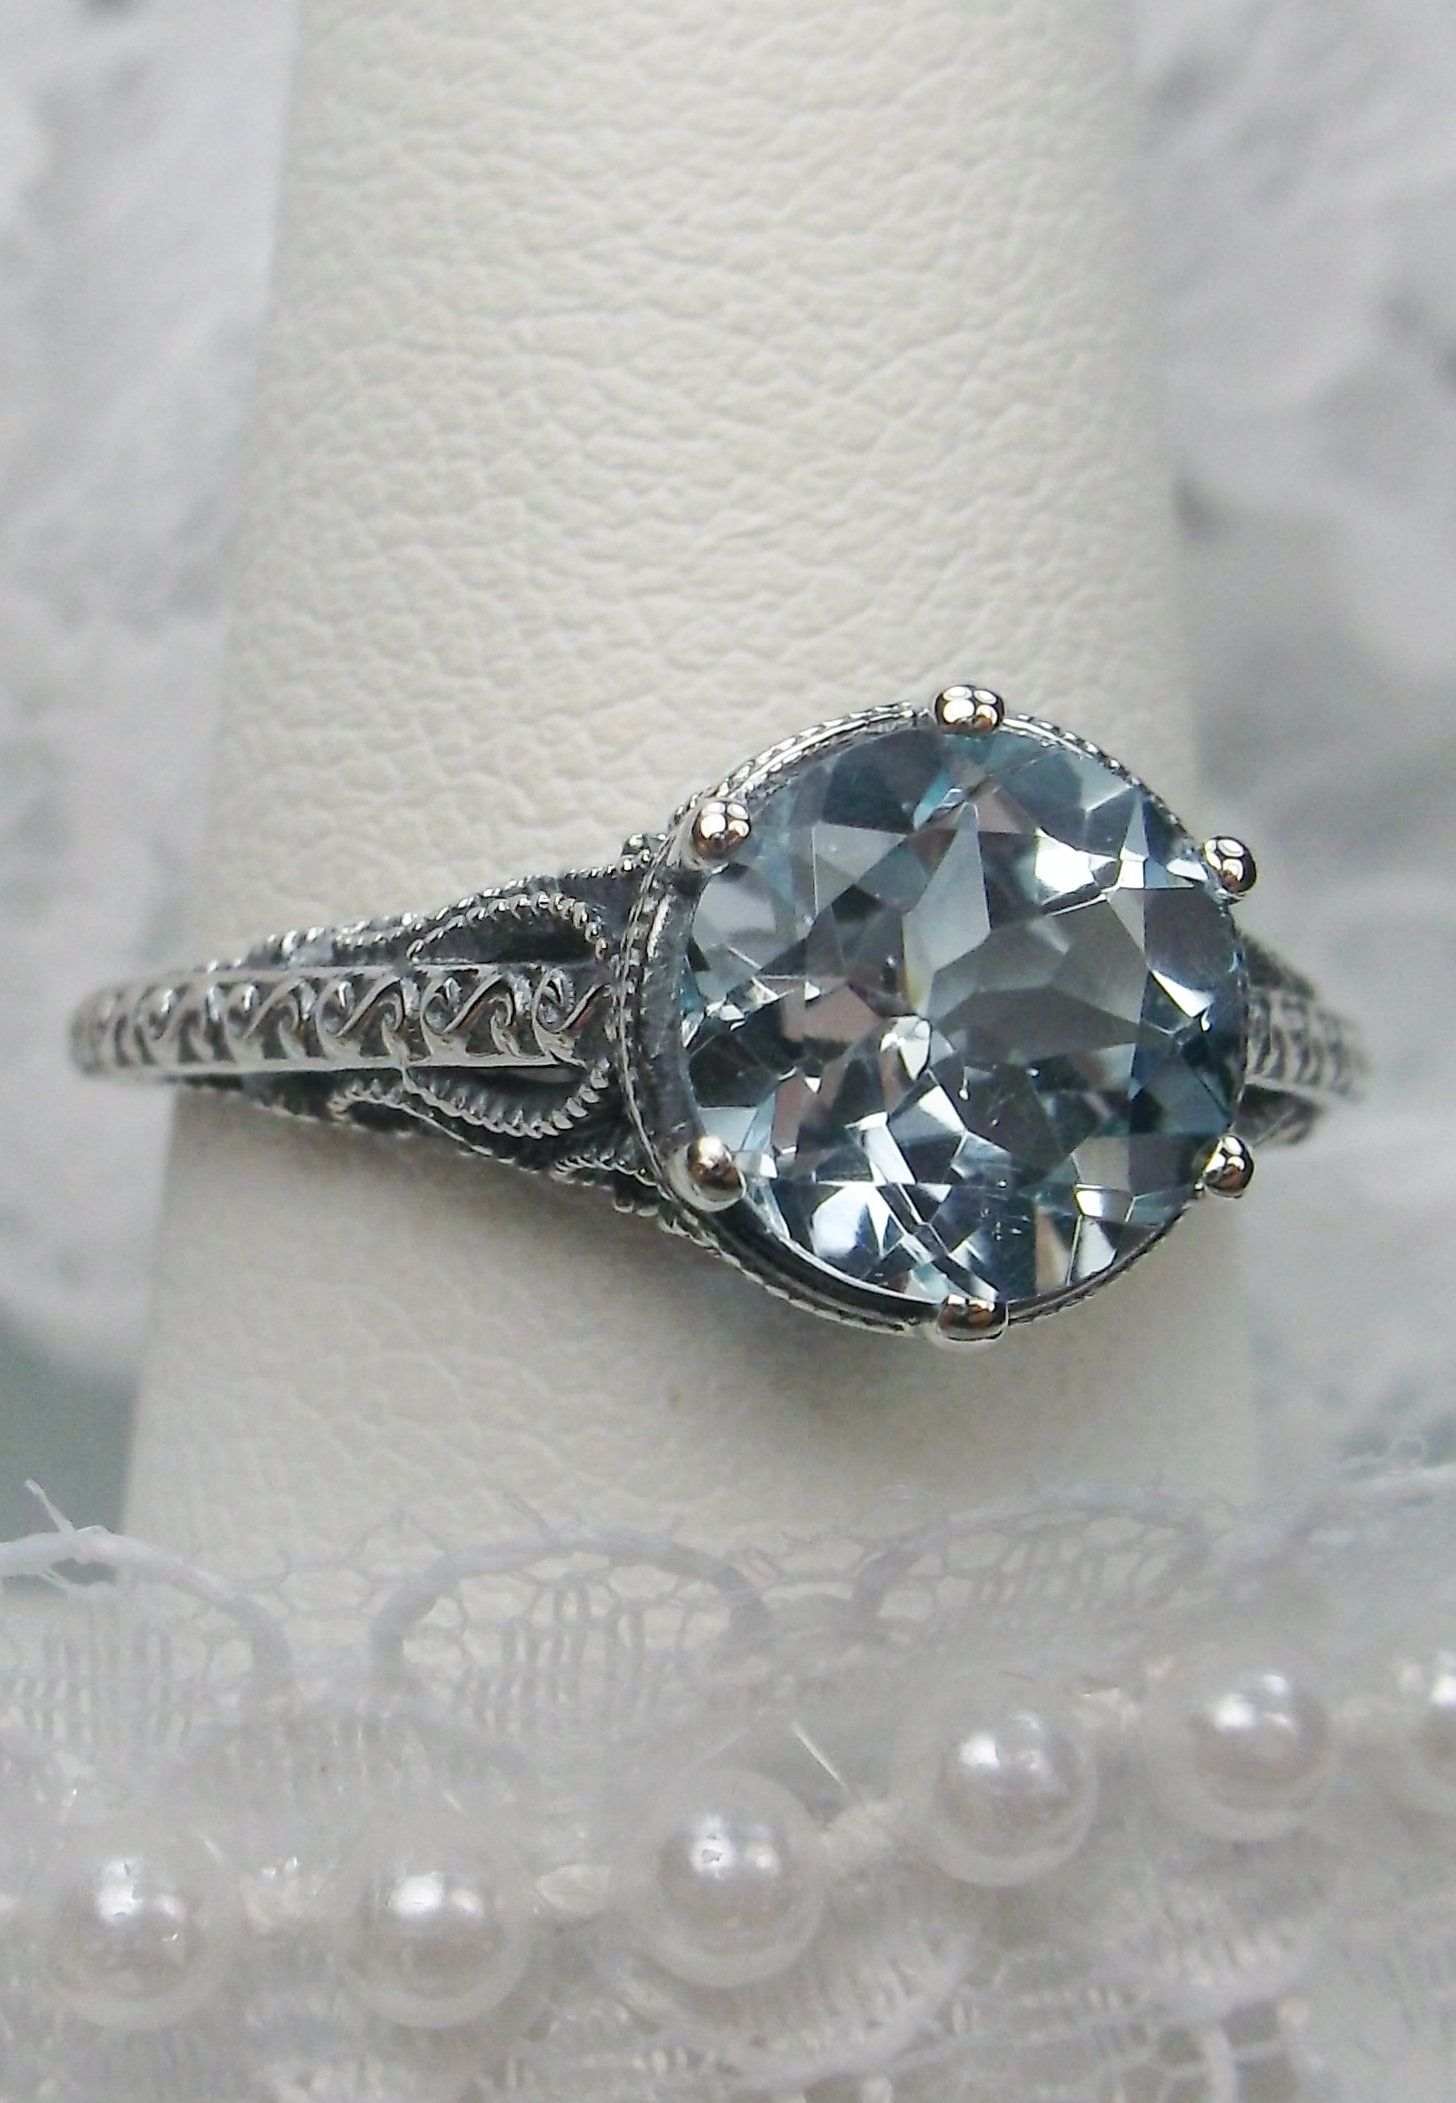 d29cd1532 Round Cut Natural Blue Topaz Gem Sterling Silver Elegant Intricate Filigree  Ring Size {Made To